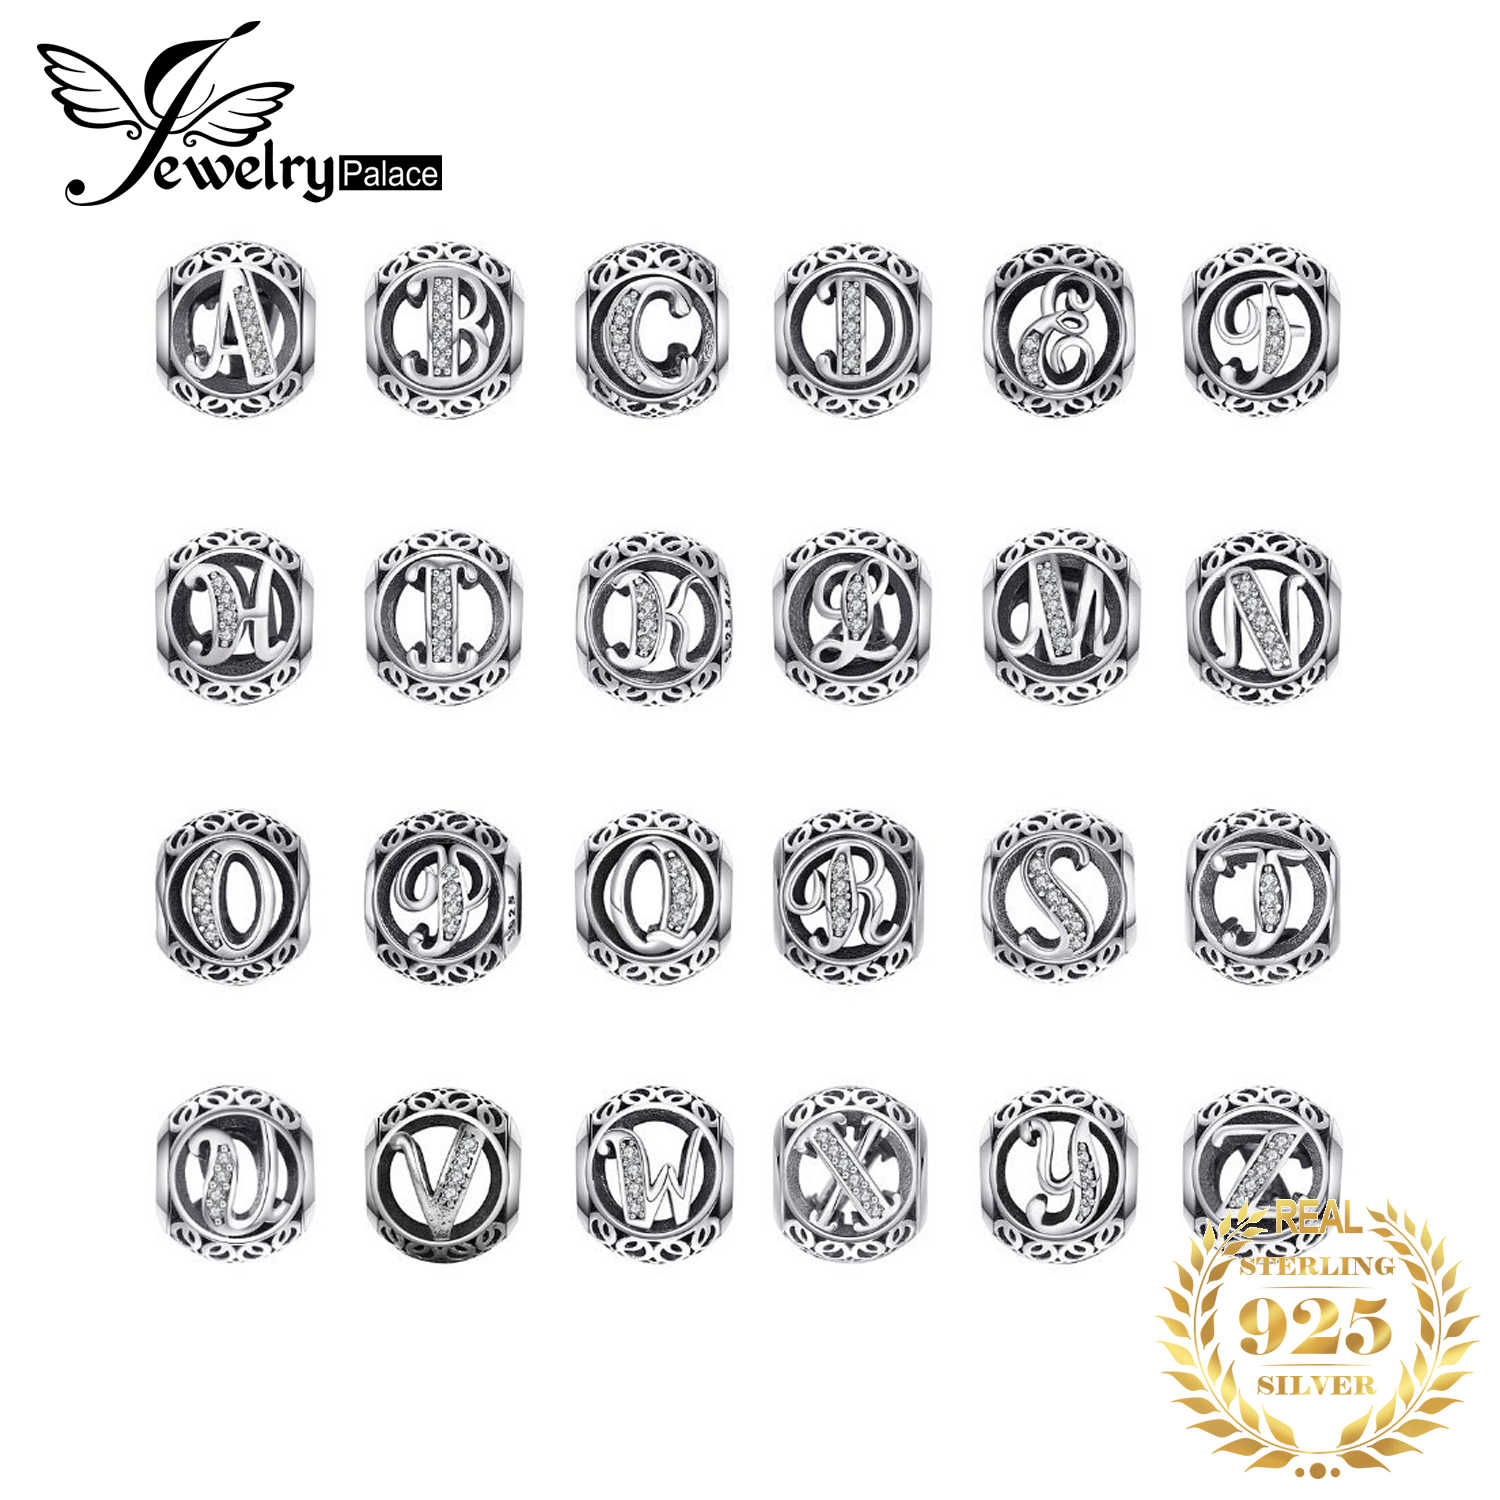 JewelryPalace Vintage Letter A-R Cubic Zirconia Aucthentic 925 Sterling Silver Charmสร้อยข้อมือกำไลข้อมือDIYเครื่องประดับสำหรับของขวัญ